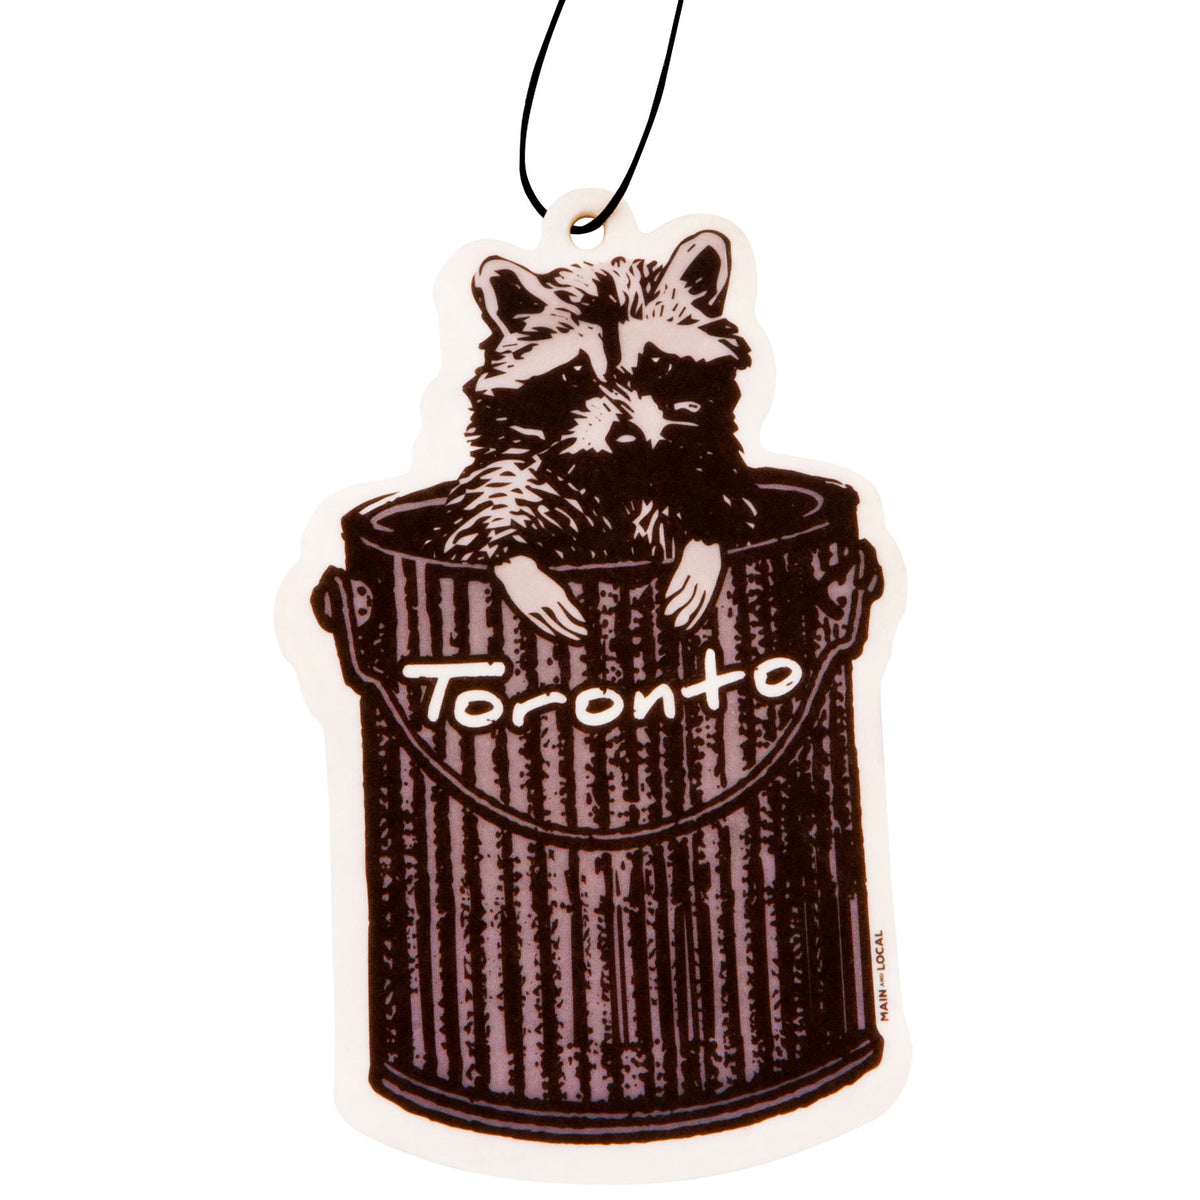 Toronto Raccoon Air Freshener - Main and Local